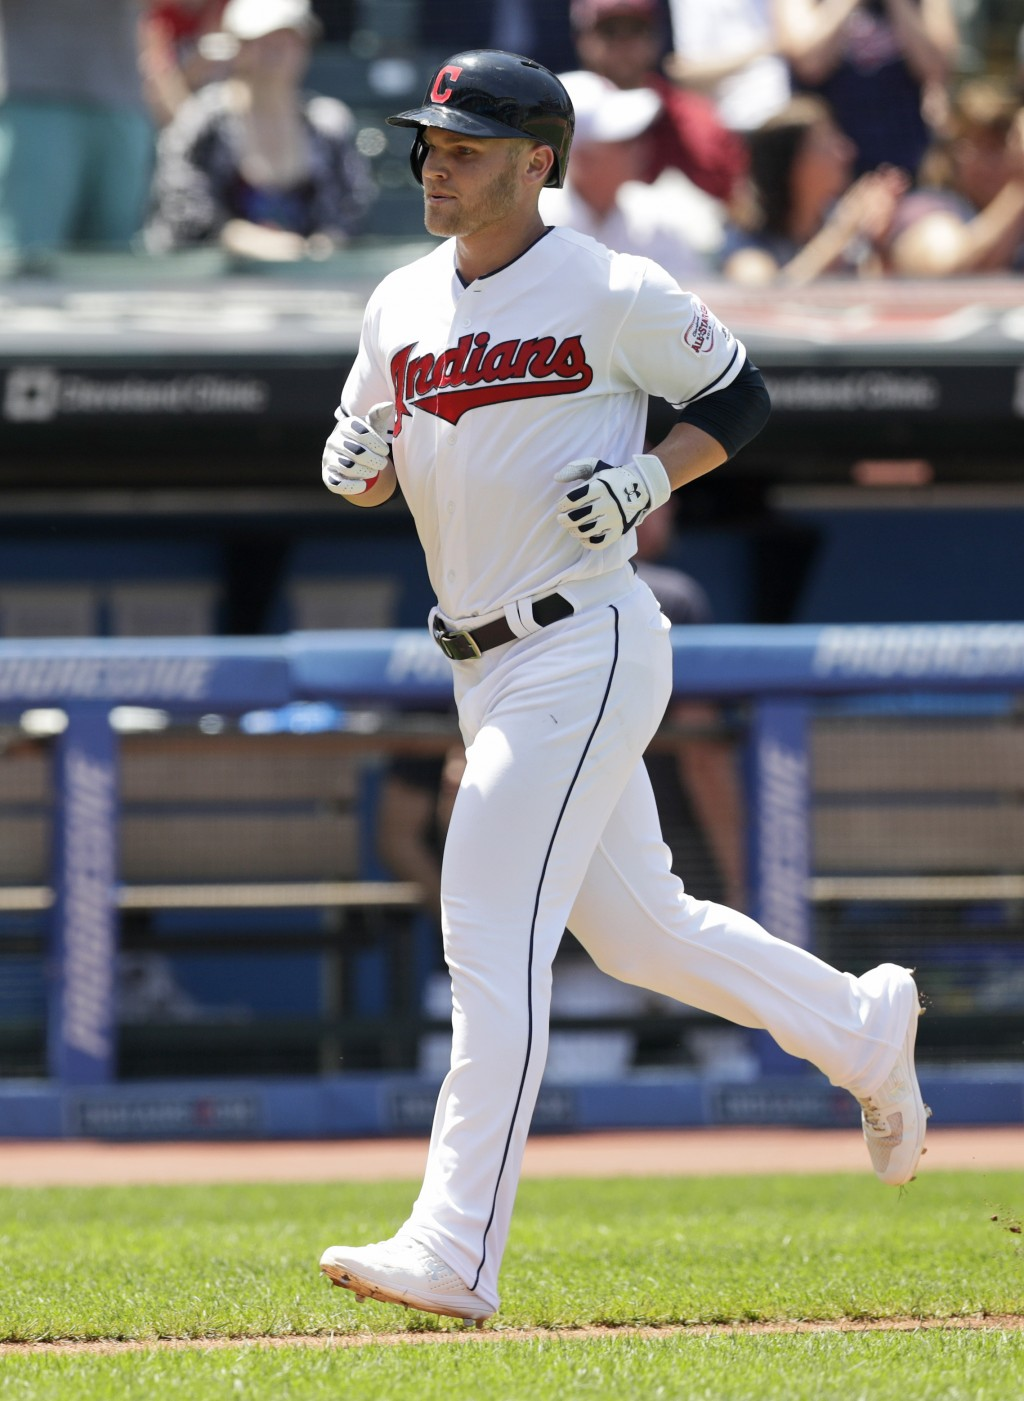 Cleveland Indians' Jake Bauers runs the bases after hitting a solo home run in the fourth inning in a baseball game against the Kansas City Royals, We...